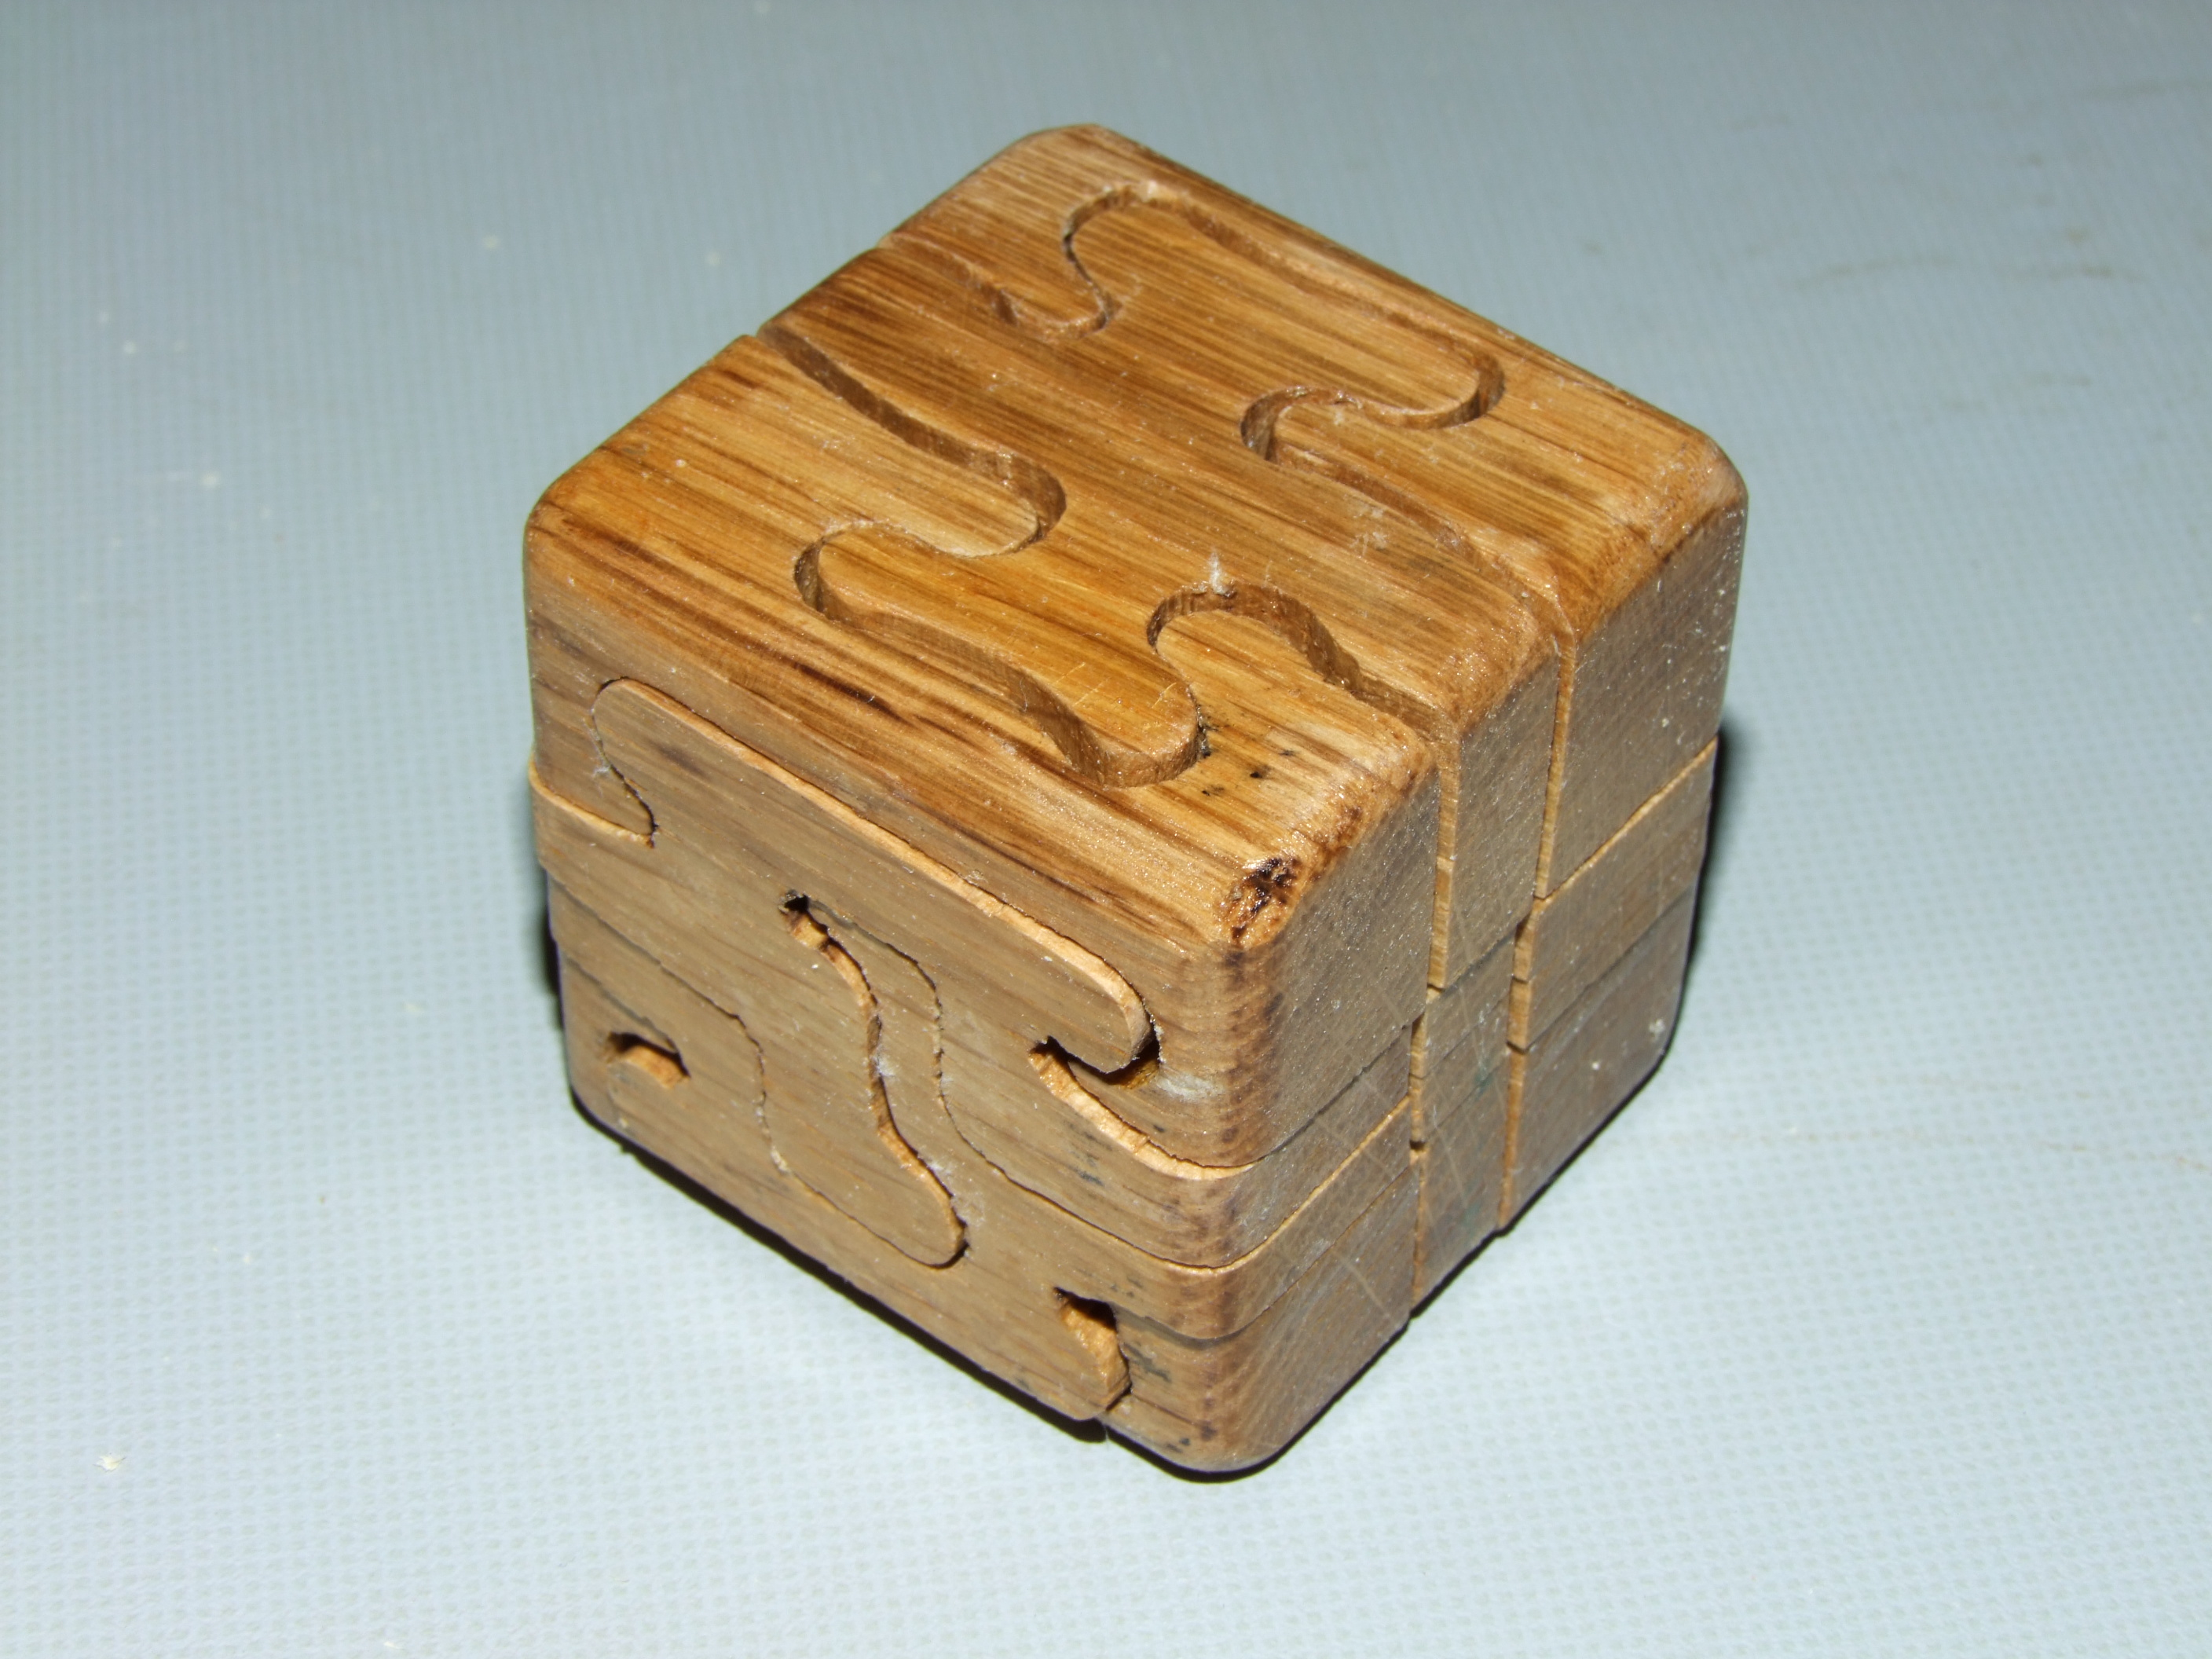 Woodworking Project- Puzzle Cube